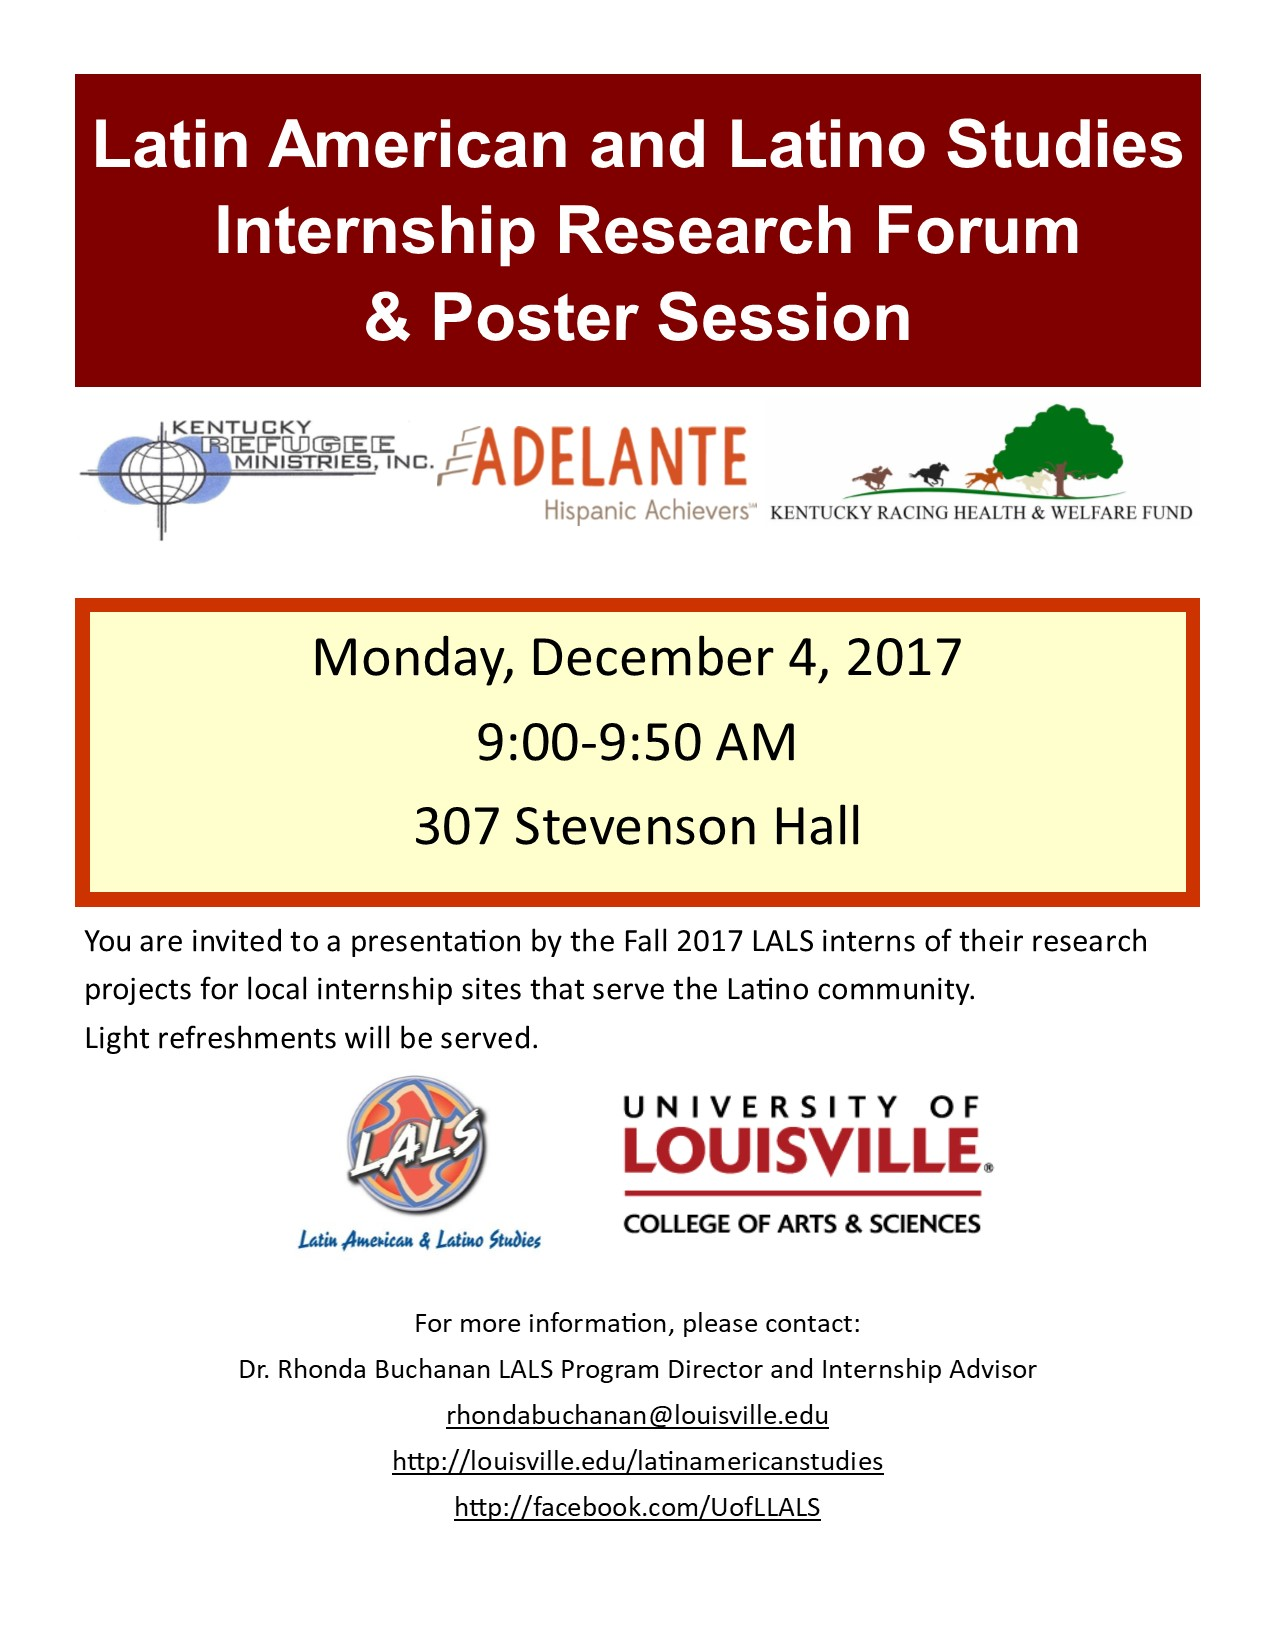 Latin American and Latino Studies Fall Internship Research Forum & Poster Session